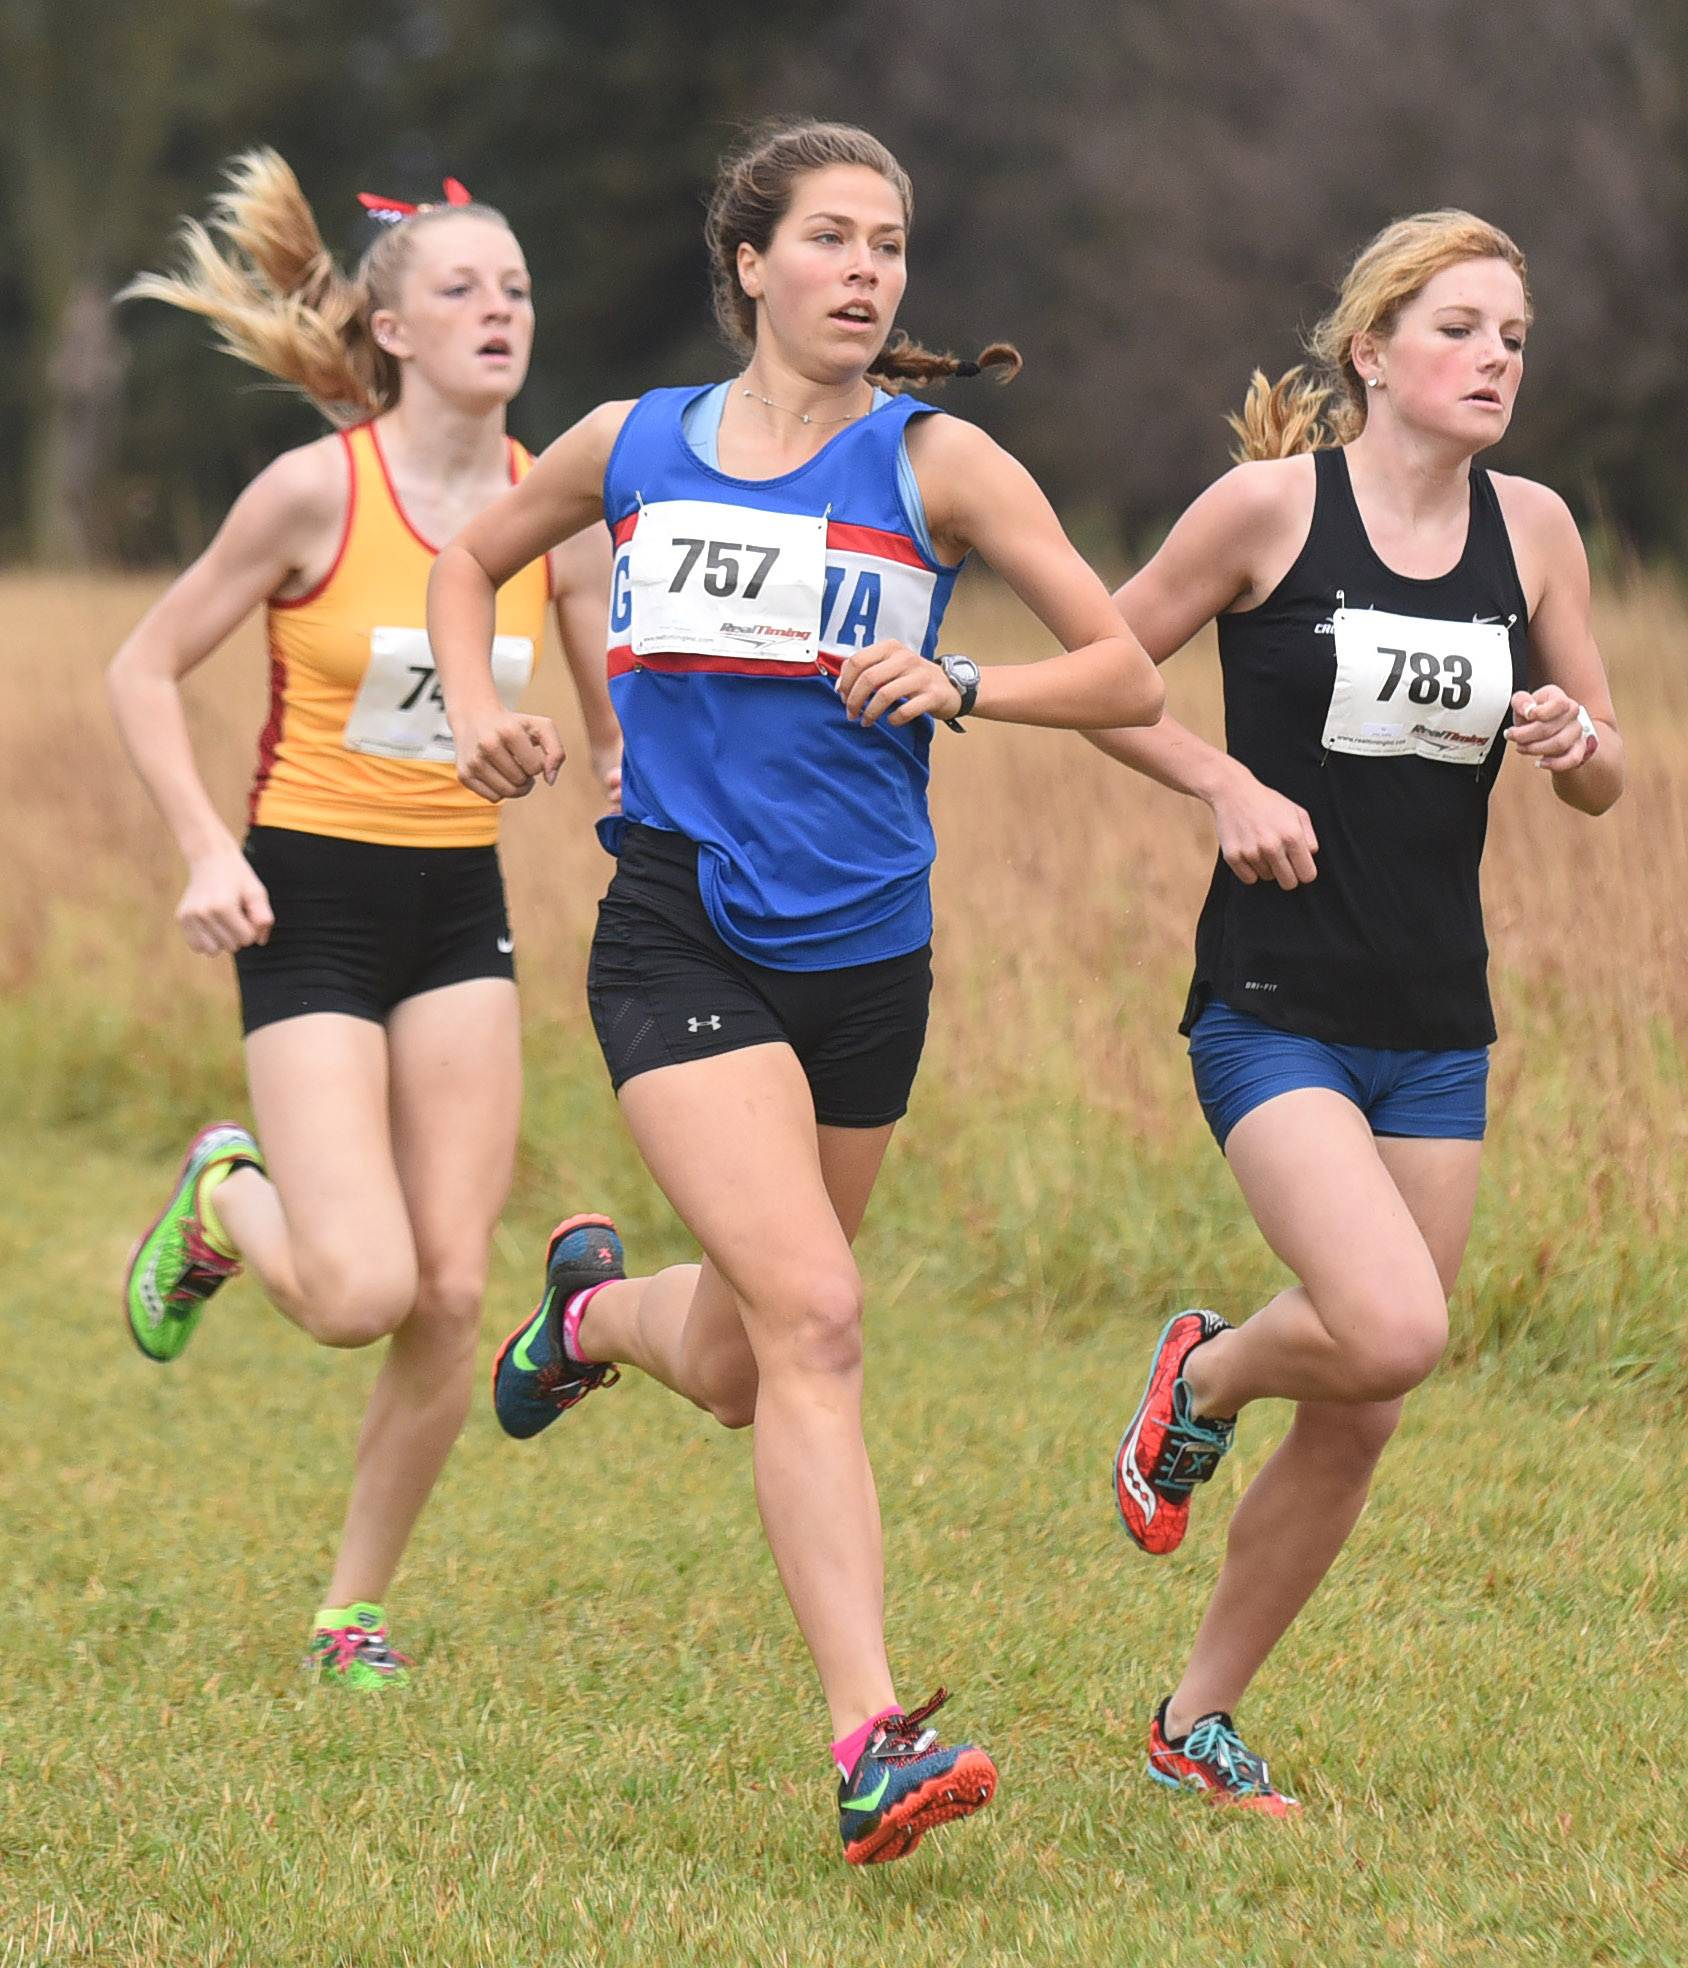 Geneva's McKenzie Altmayer (757) leads the start of the girls varsity race flanked by Batavia's Emma Stephens, left, and St. Charles North's Audrey Ernst (783) at the St. Charles North cross country regional on Saturday. Altmayer took first place.